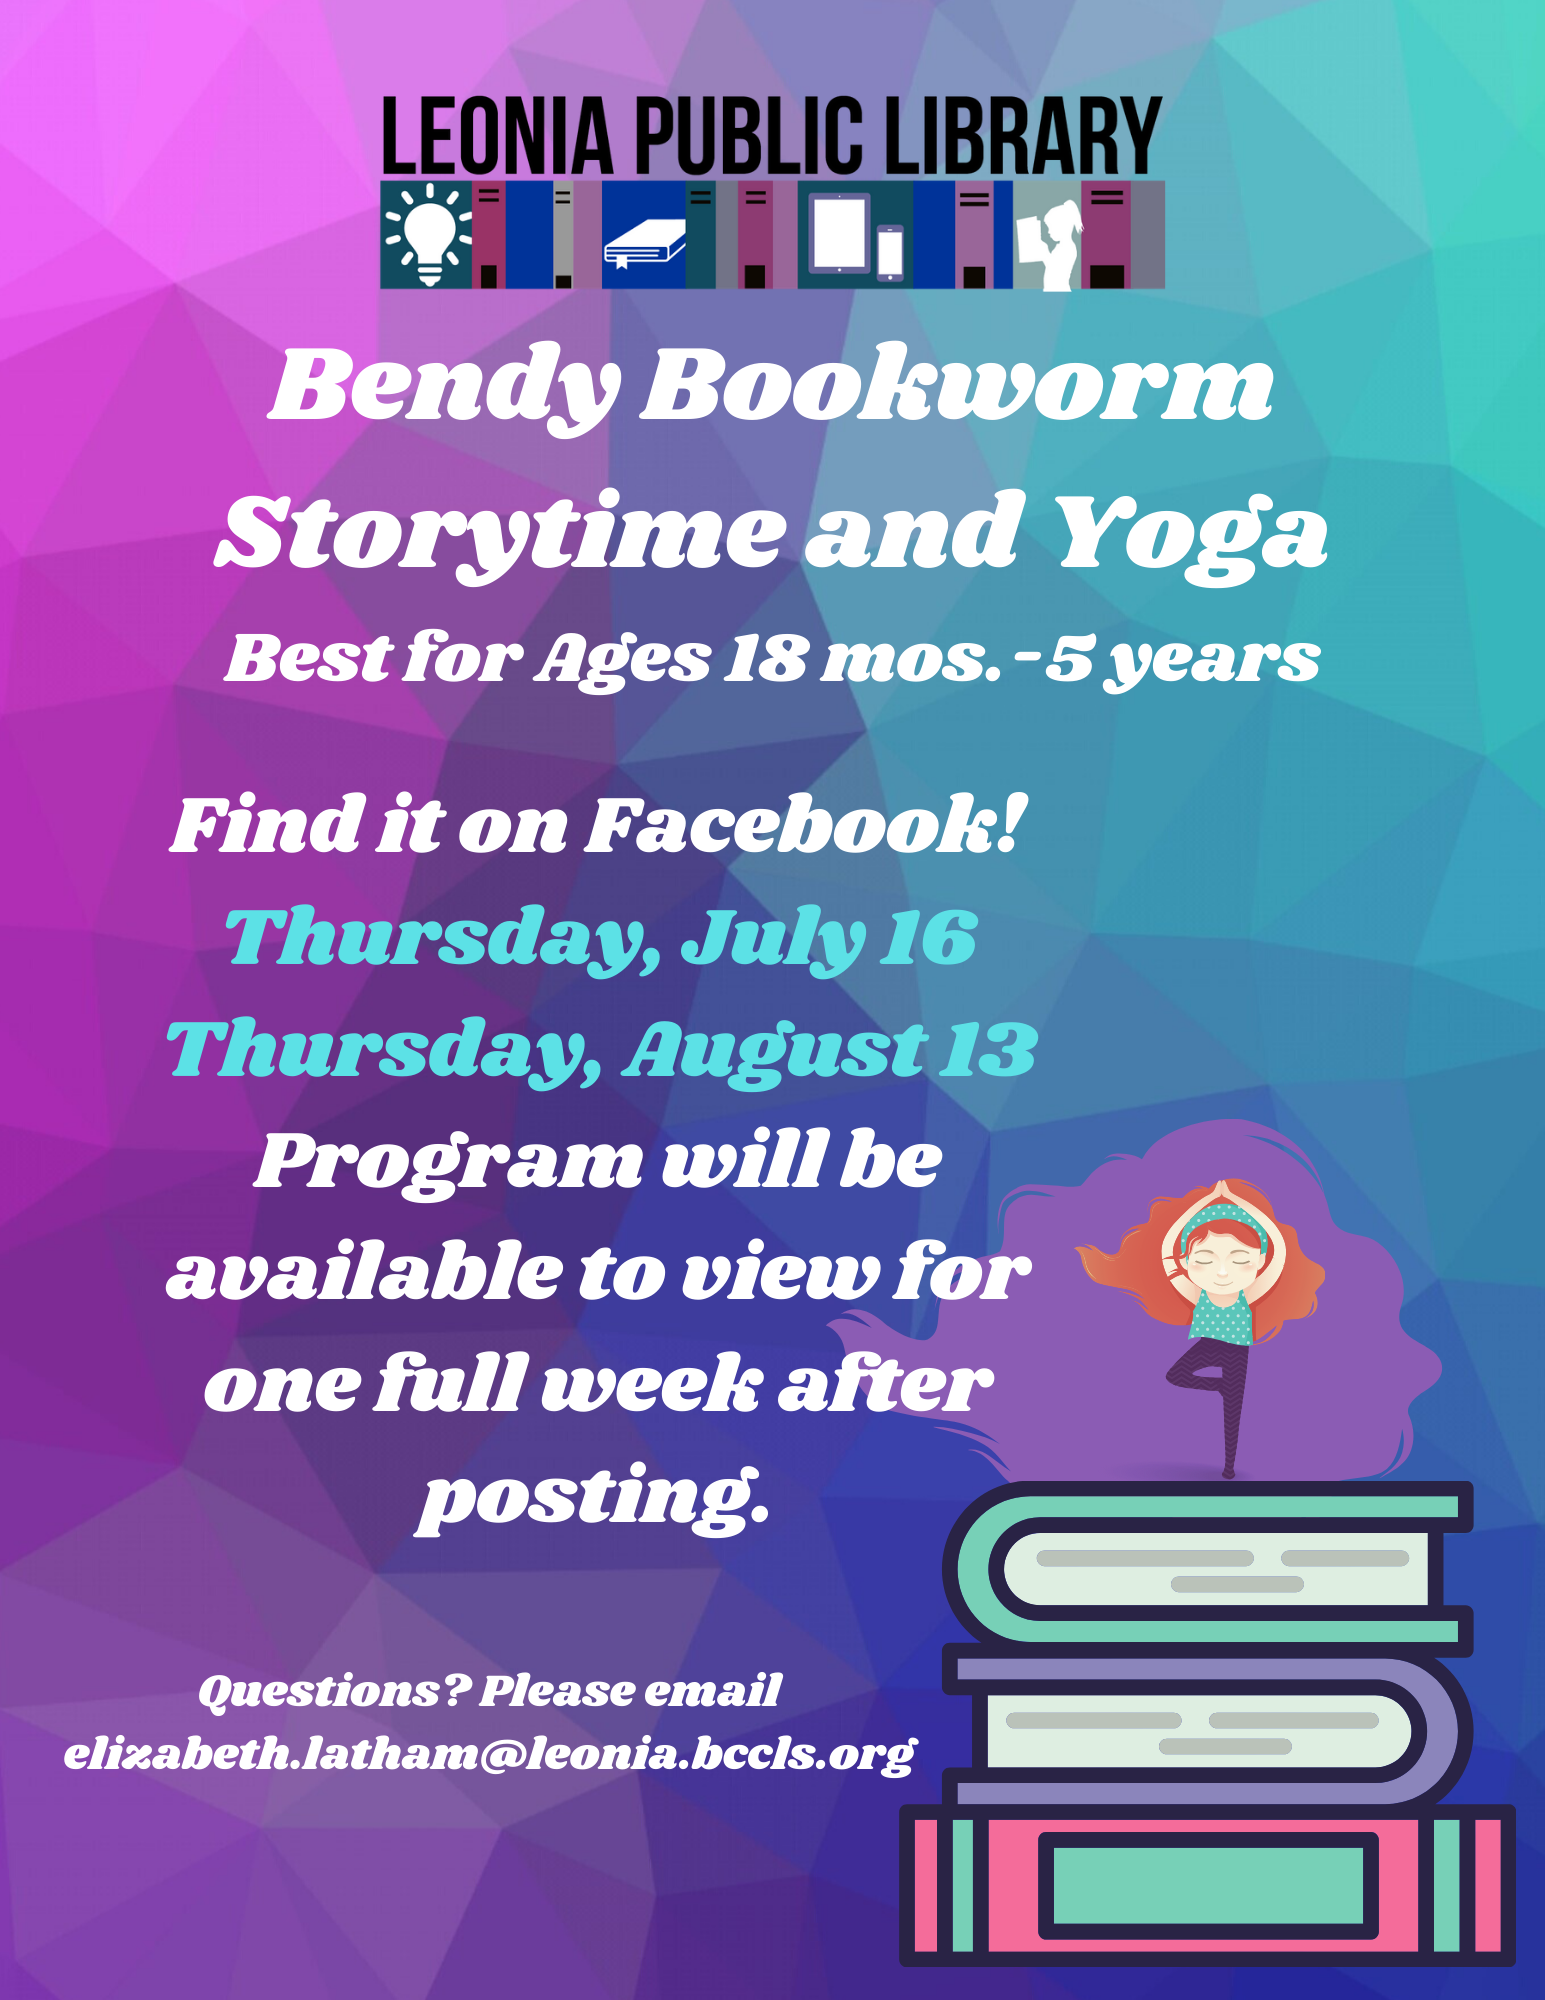 Bendy Bookworm - Storytime and Yoga for Kids!